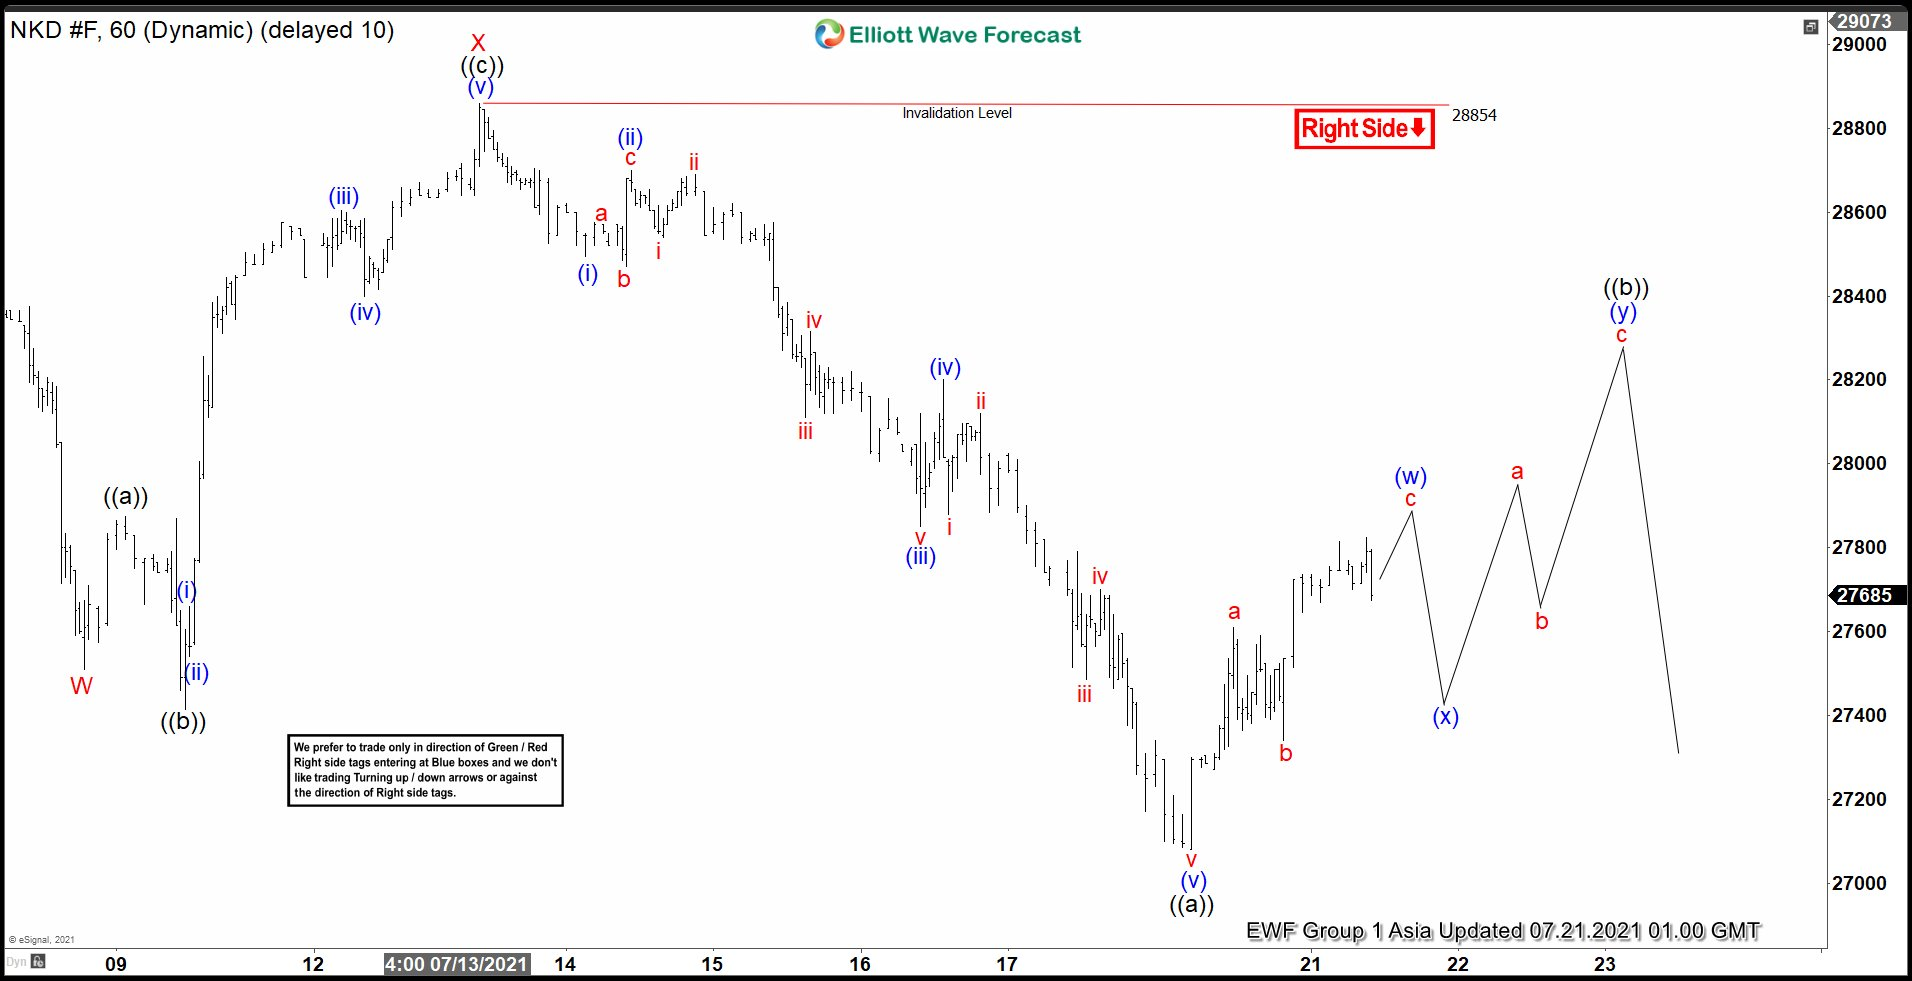 Elliott Wave View: Nikkei (NKD) Rally Likely to Fail